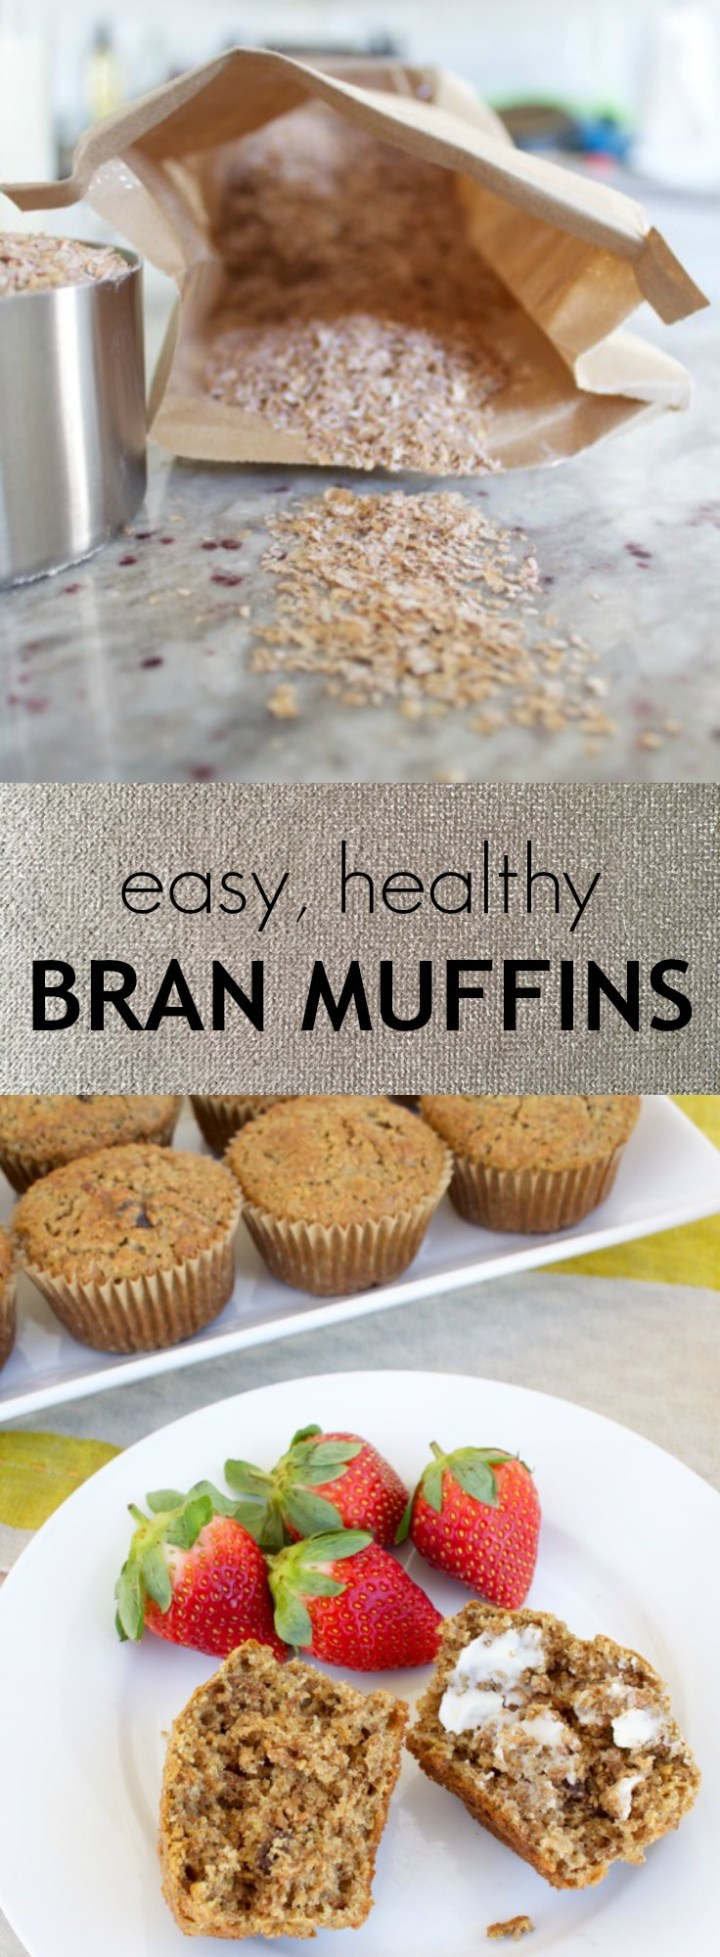 Healthy, whole-grain bran muffins are tender yet textured, get a burst of sweetness from raisins, and have a secret ingredient!